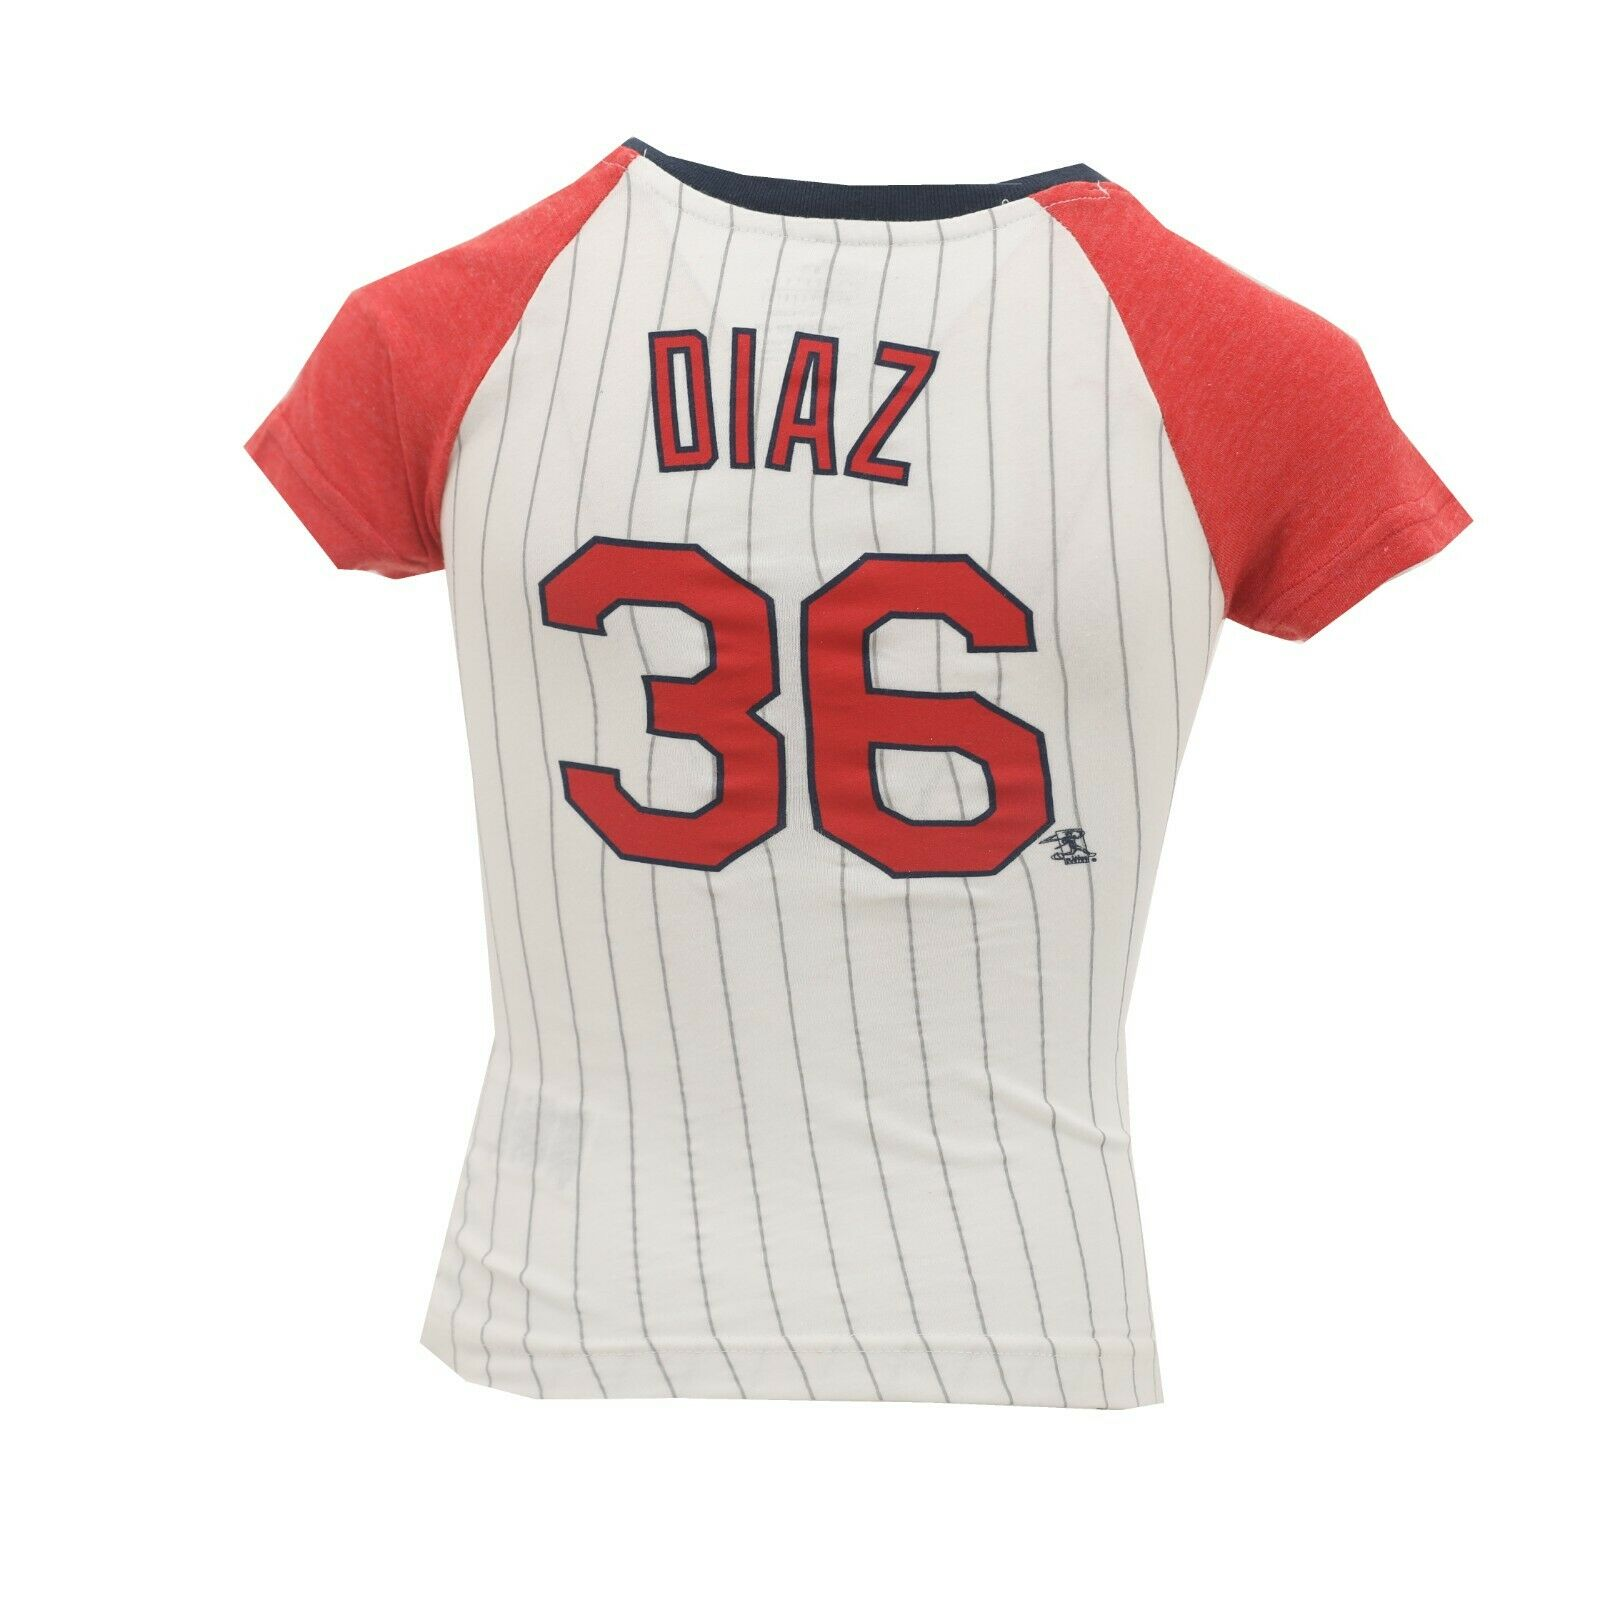 71b2a1e0 Details about St. Louis Cardinals MLB Genuine Kids Youth Girls Size Aledmys  Diaz T-Shirt New